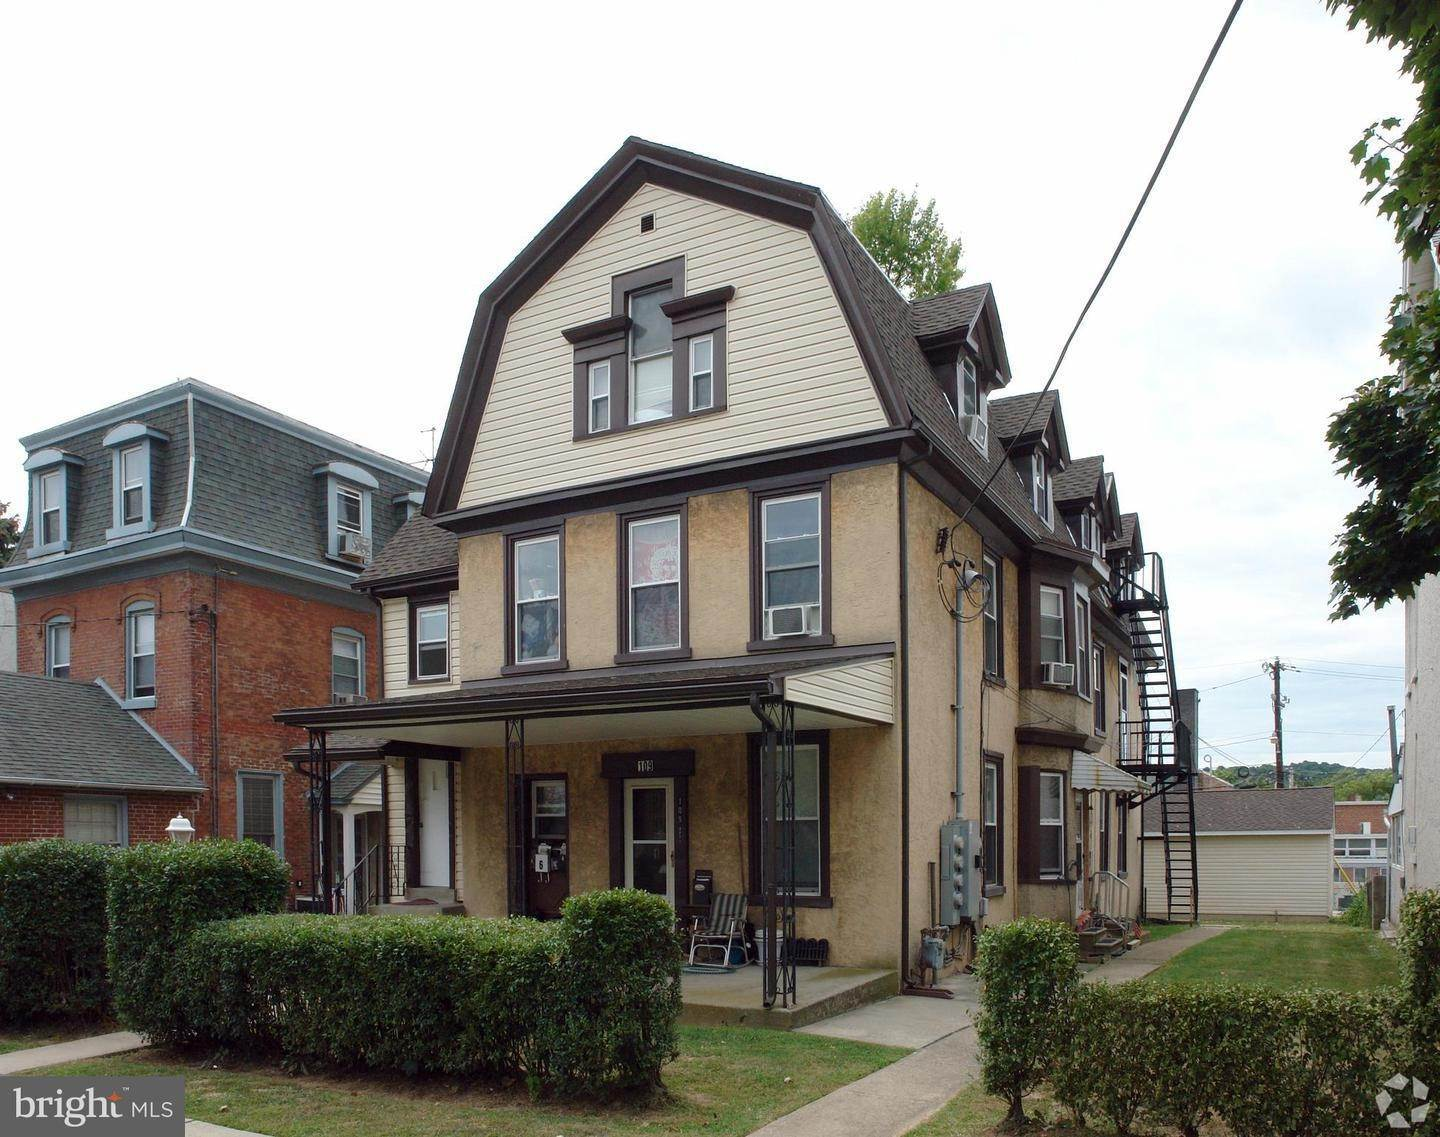 Commercial for Sale at 109 E 4TH Avenue Conshohocken, Pennsylvania 19428 United States